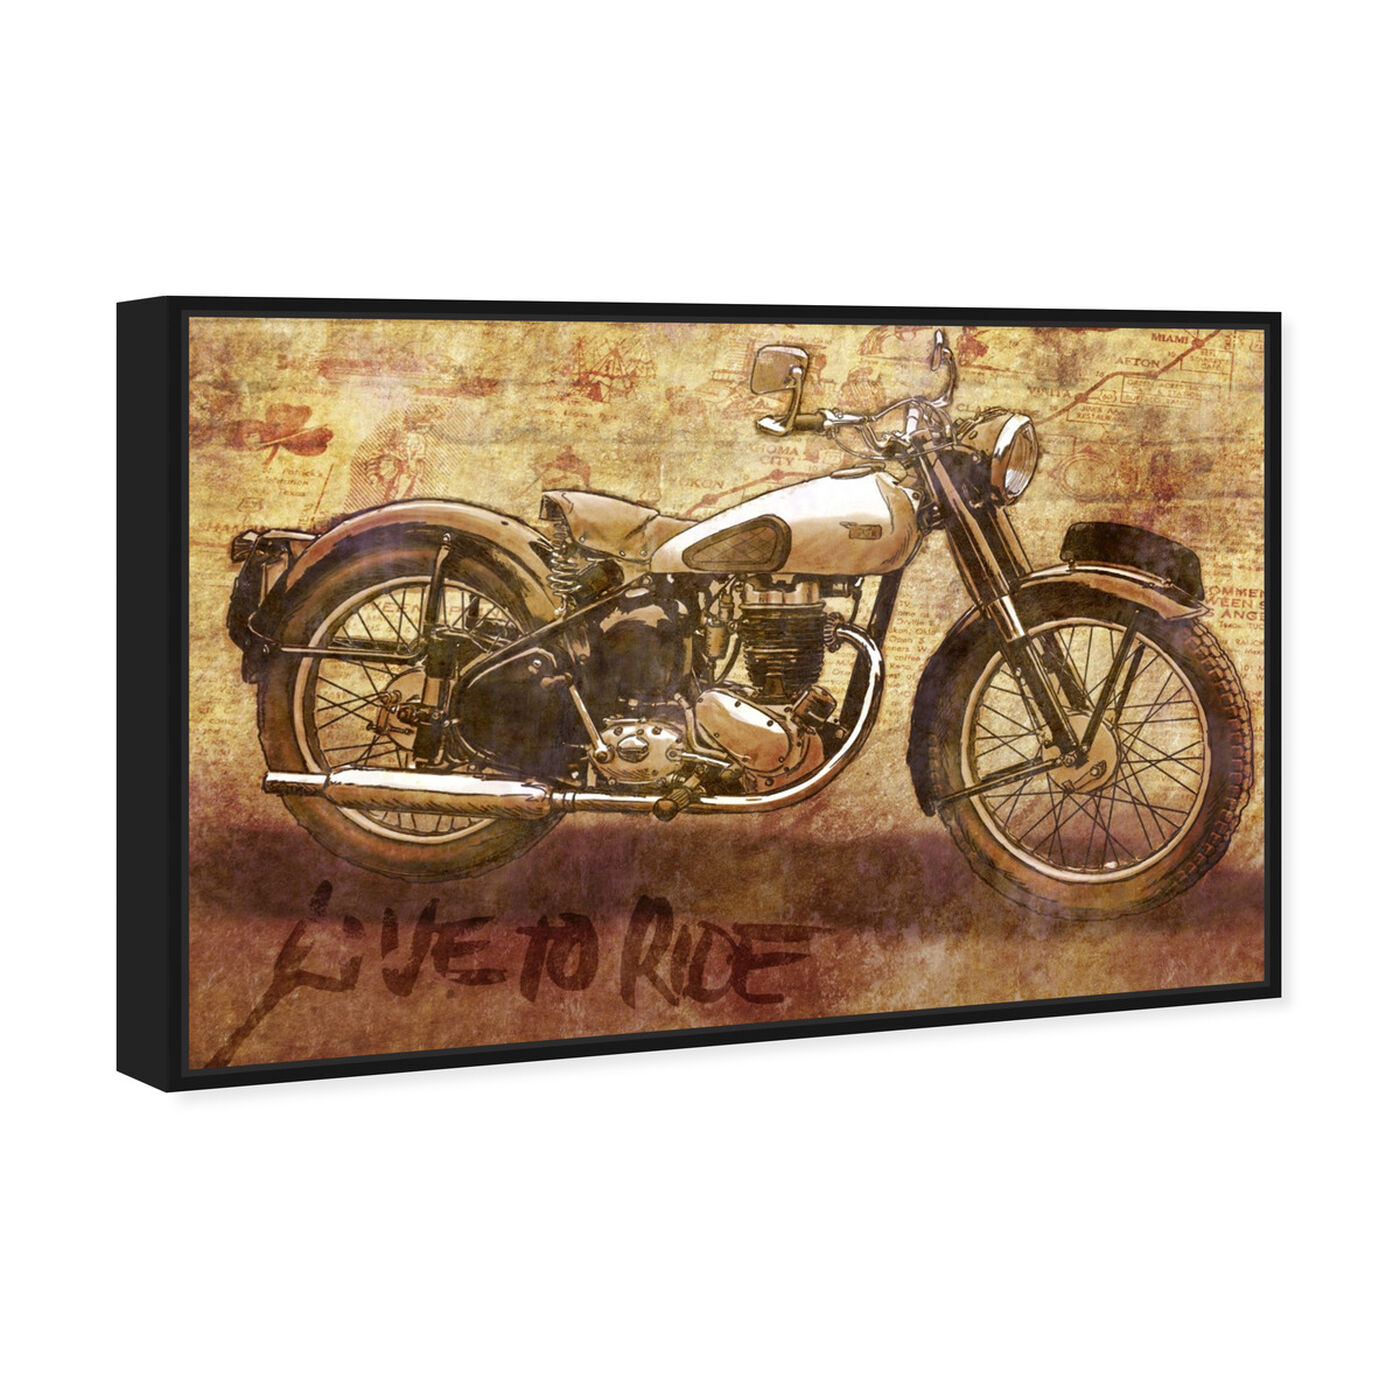 Angled view of Live to Ride featuring transportation and motorcycles art.